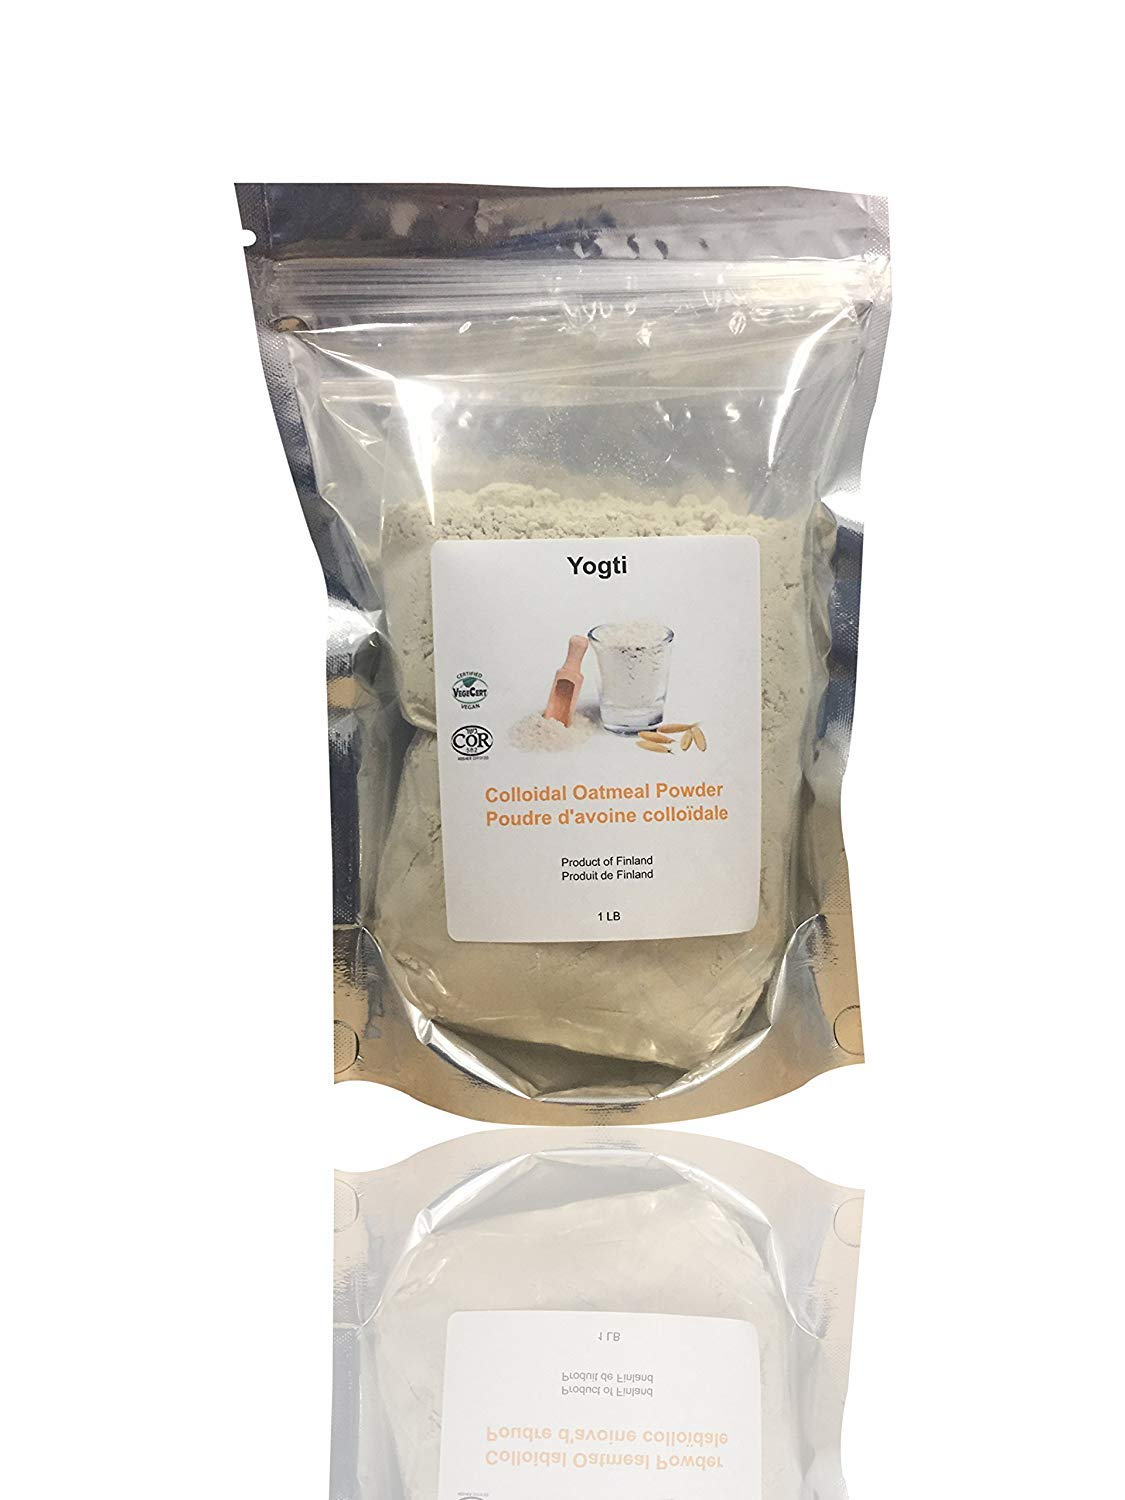 Yogti Colloidal Oatmeal Powder, 1 Lb